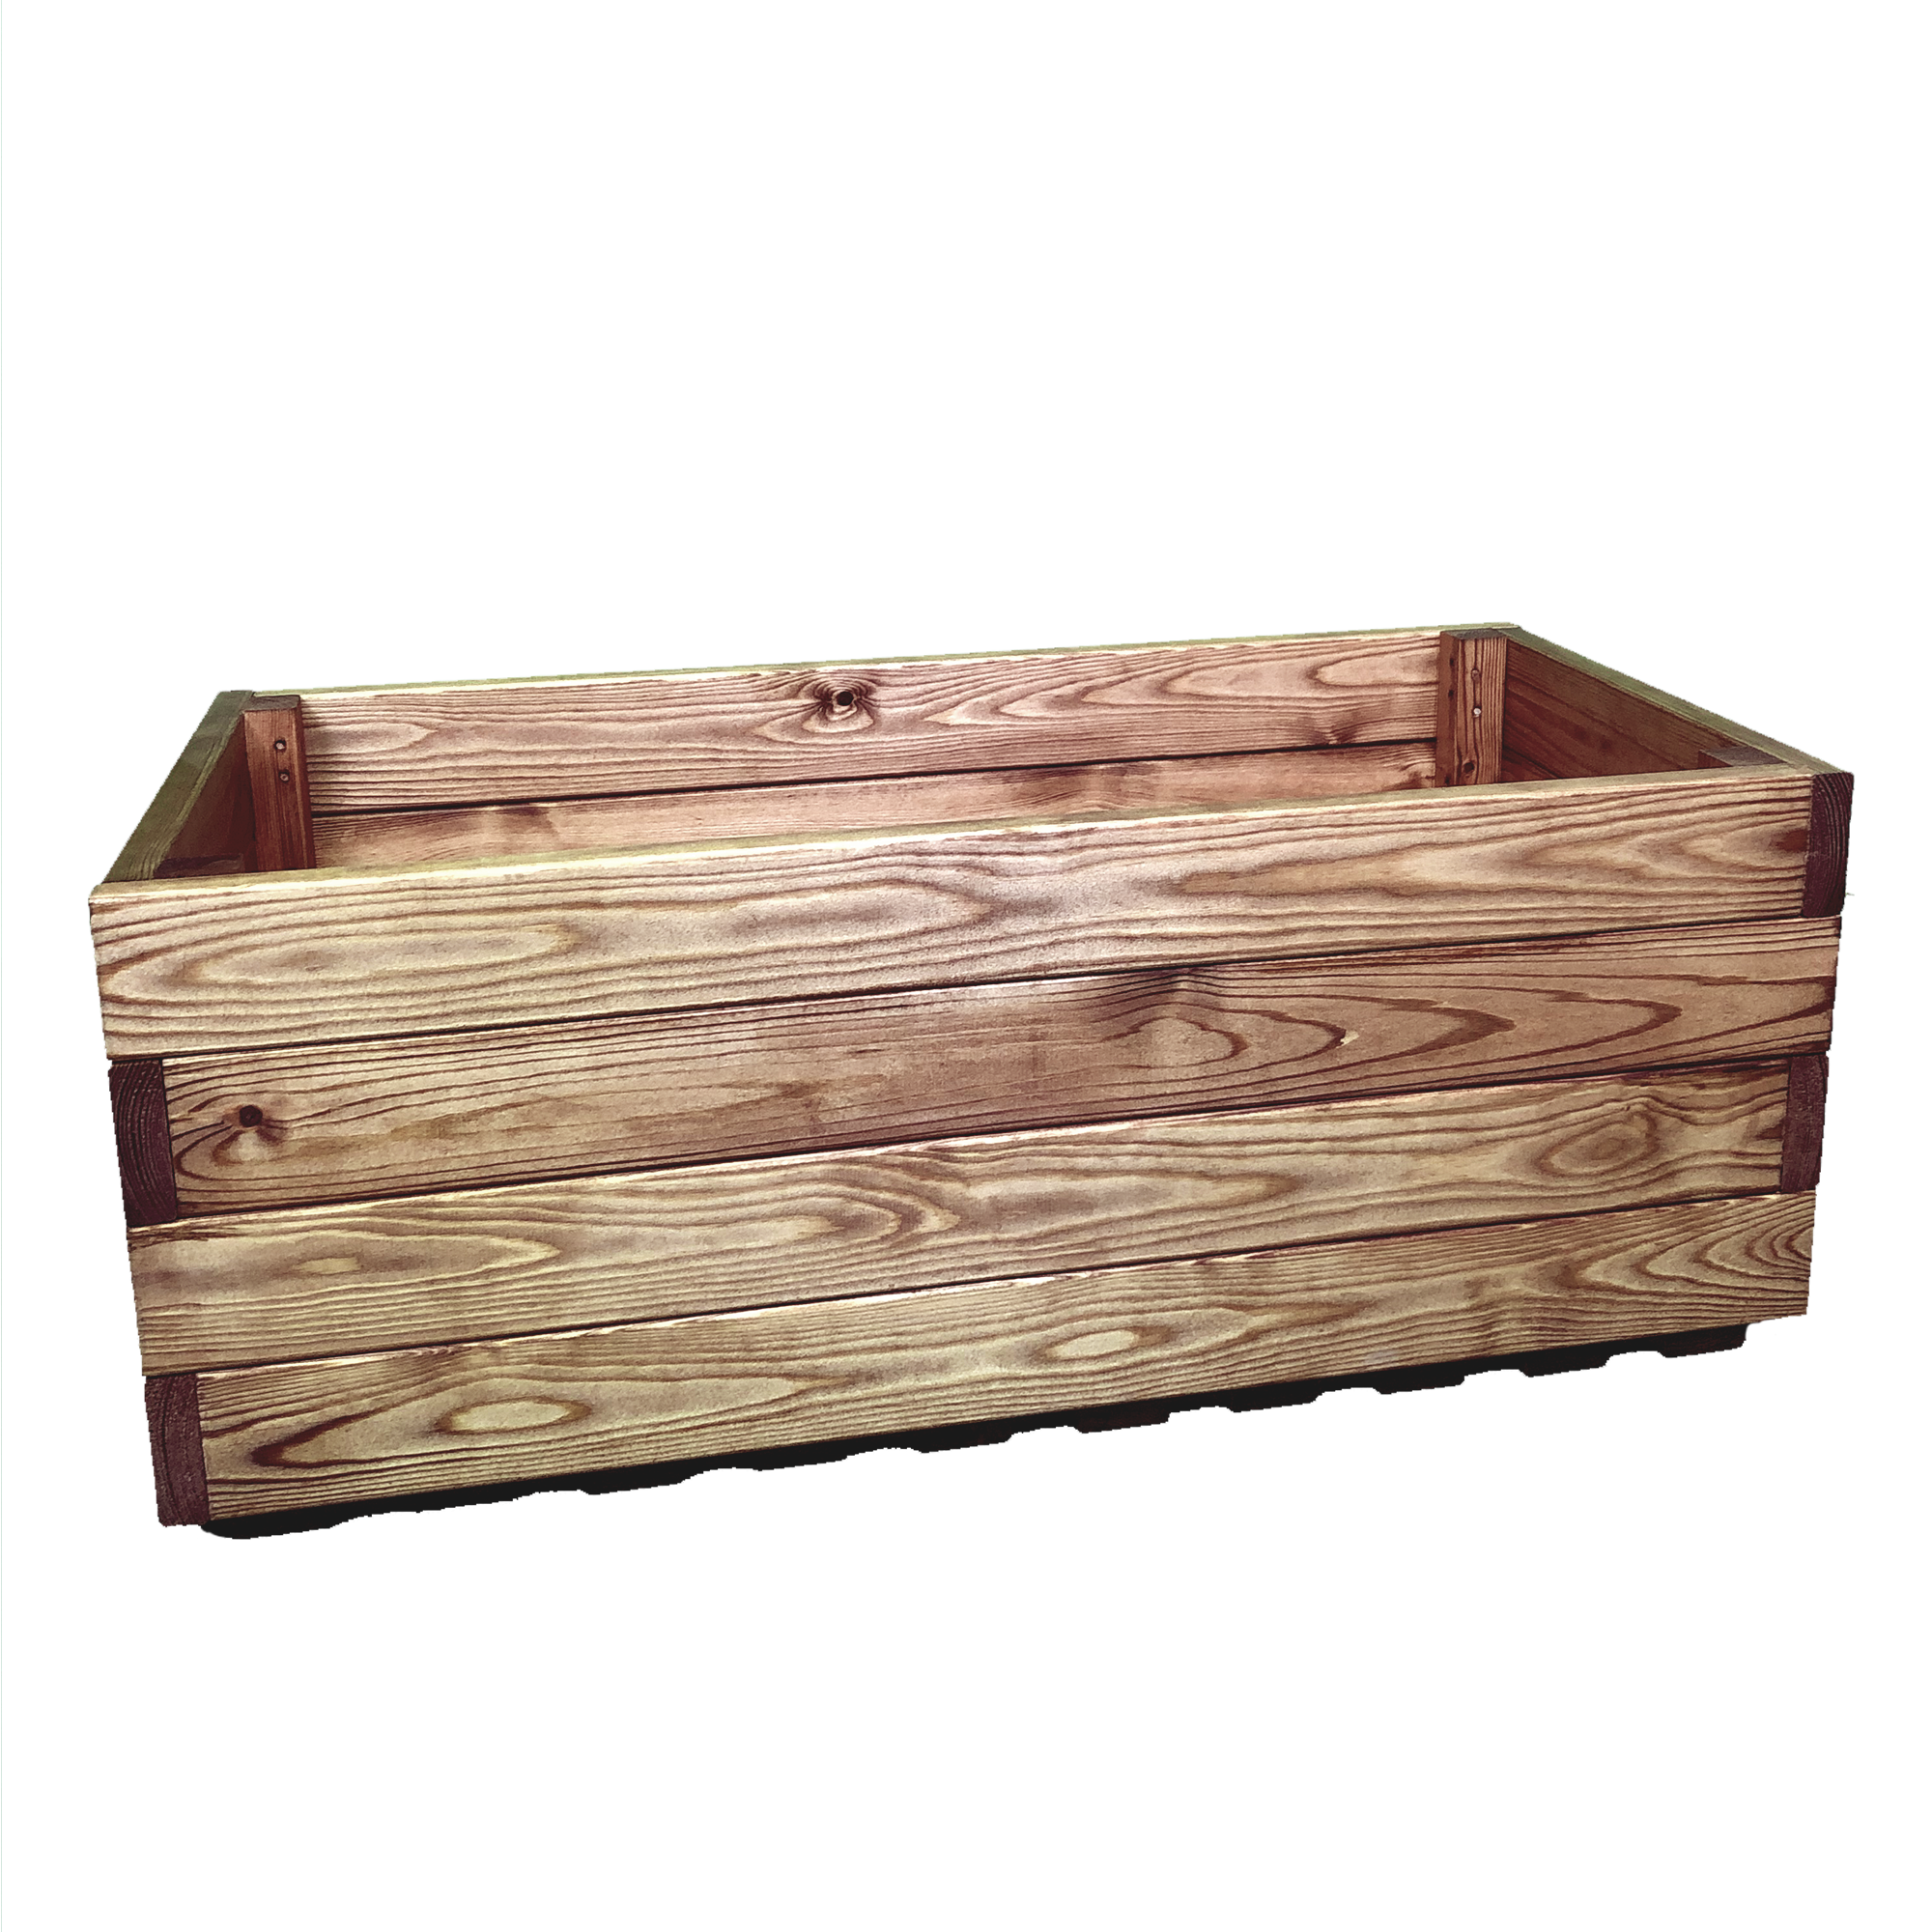 EXTRA LARGE PLUS Simply Wood Trough Wooden Garden Planter Sale!!!